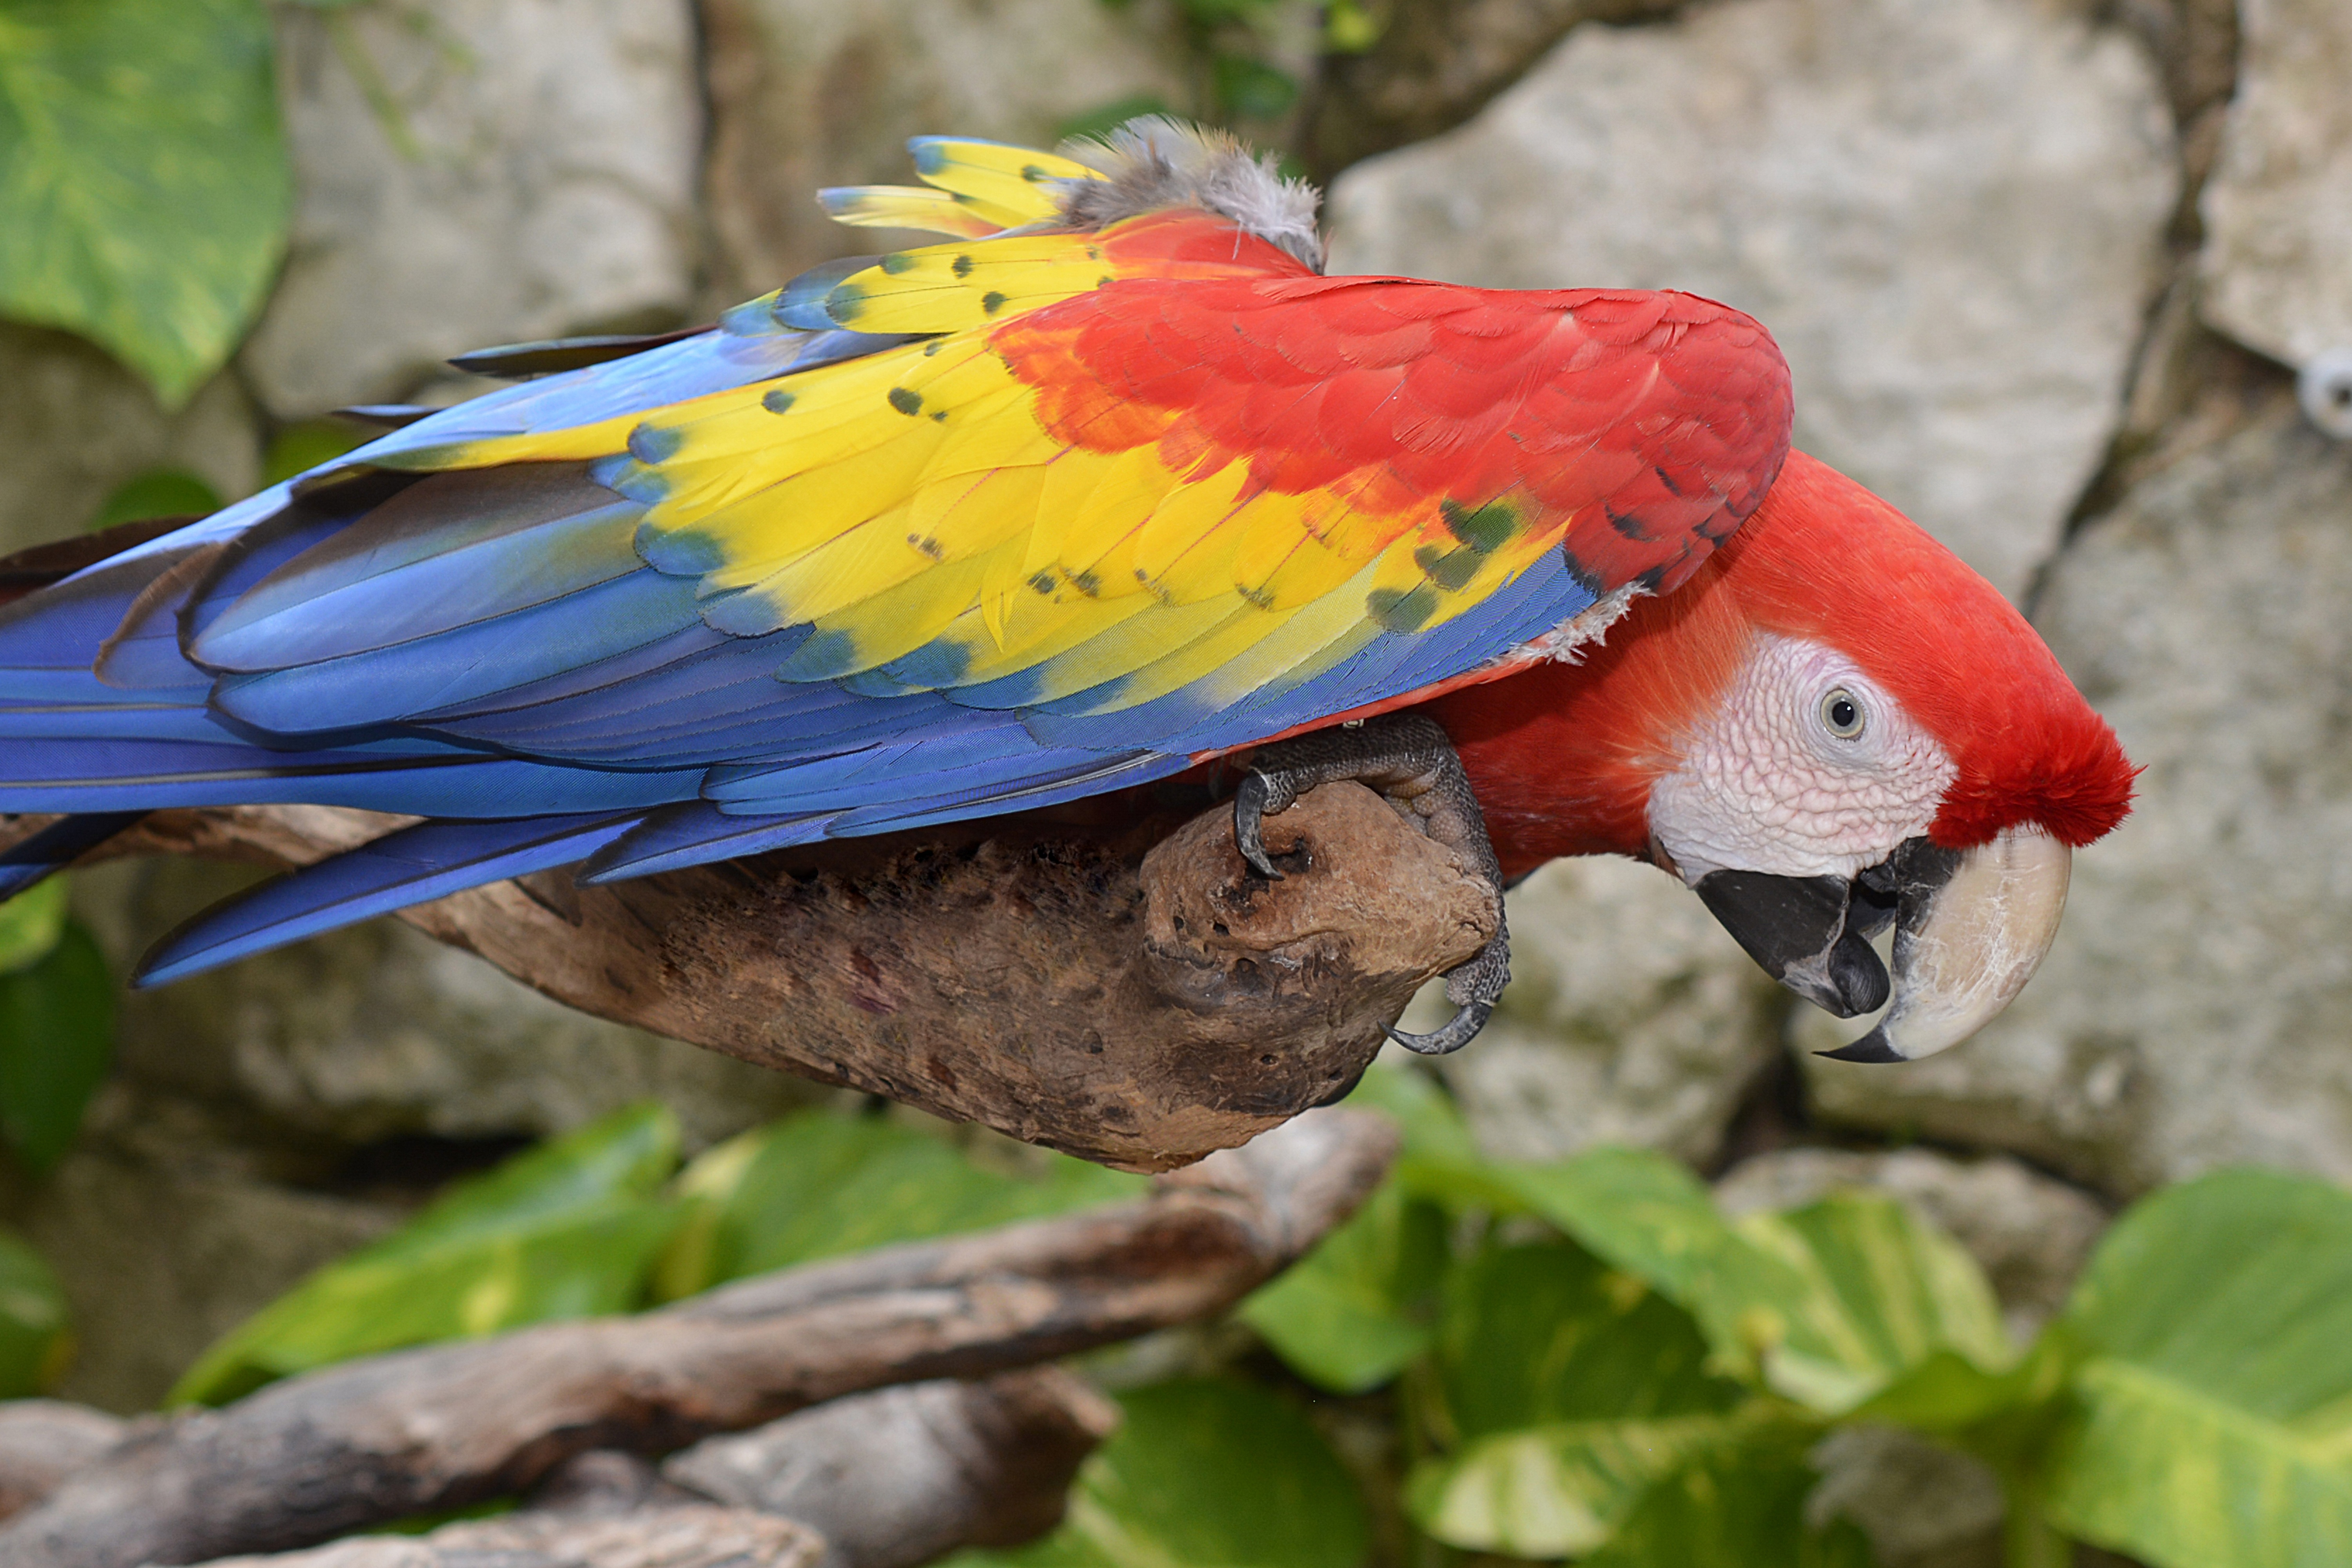 88374 download wallpaper Animals, Parrots, Macaw, Bird, Multicolored, Motley screensavers and pictures for free